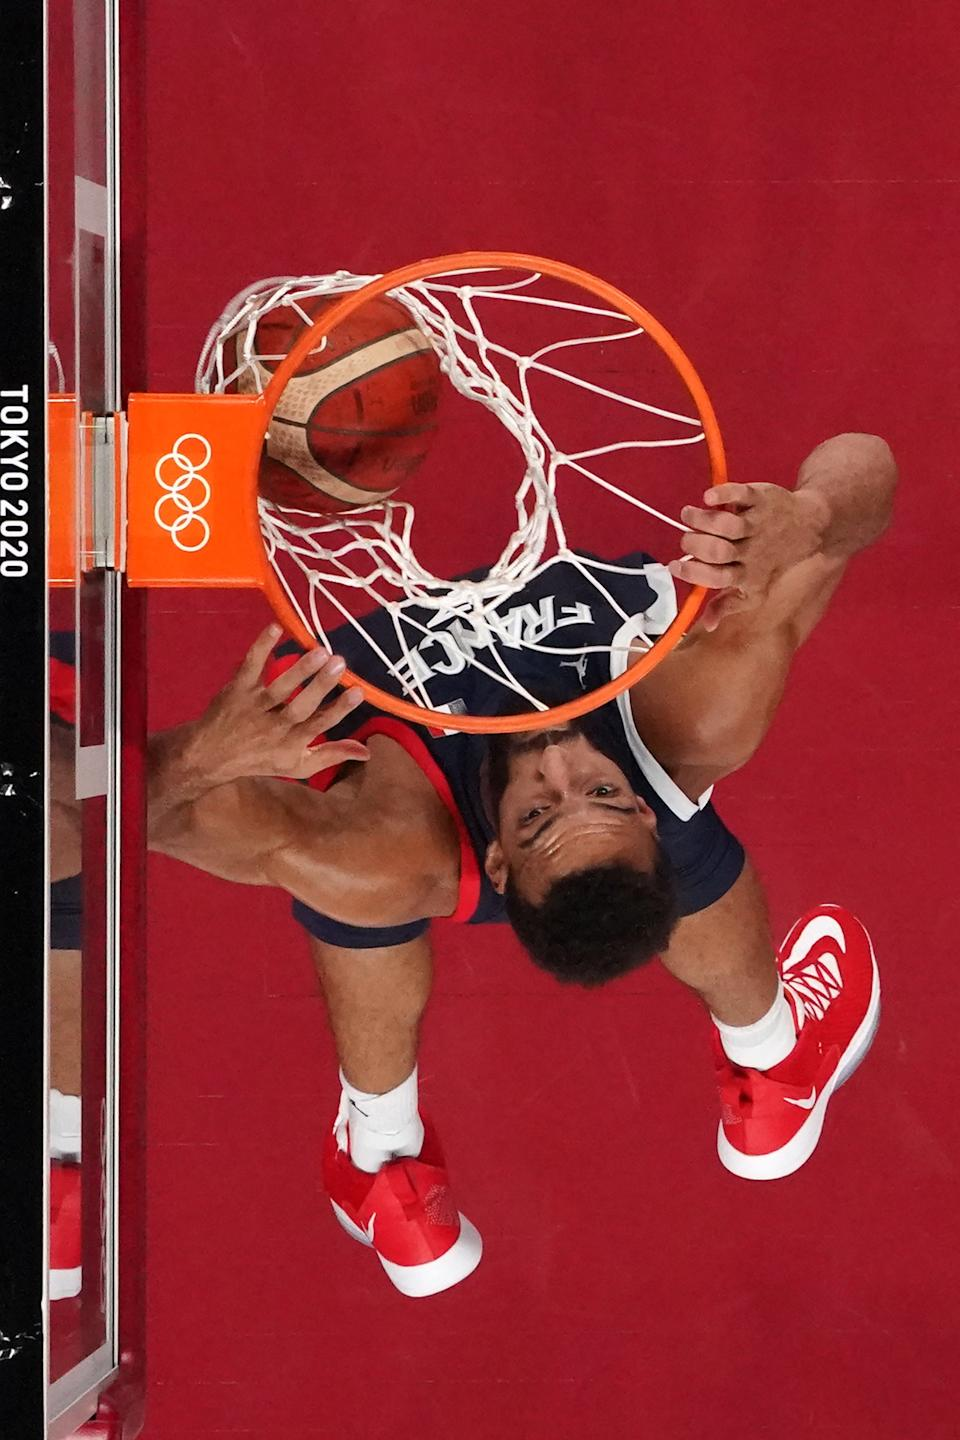 <p>France's Rudy Gobert dunks the ball in the men's preliminary round group A basketball match between Iran and France during the Tokyo 2020 Olympic Games at the Saitama Super Arena in Saitama on July 31, 2021. (Photo by Brian SNYDER / POOL / AFP)</p>